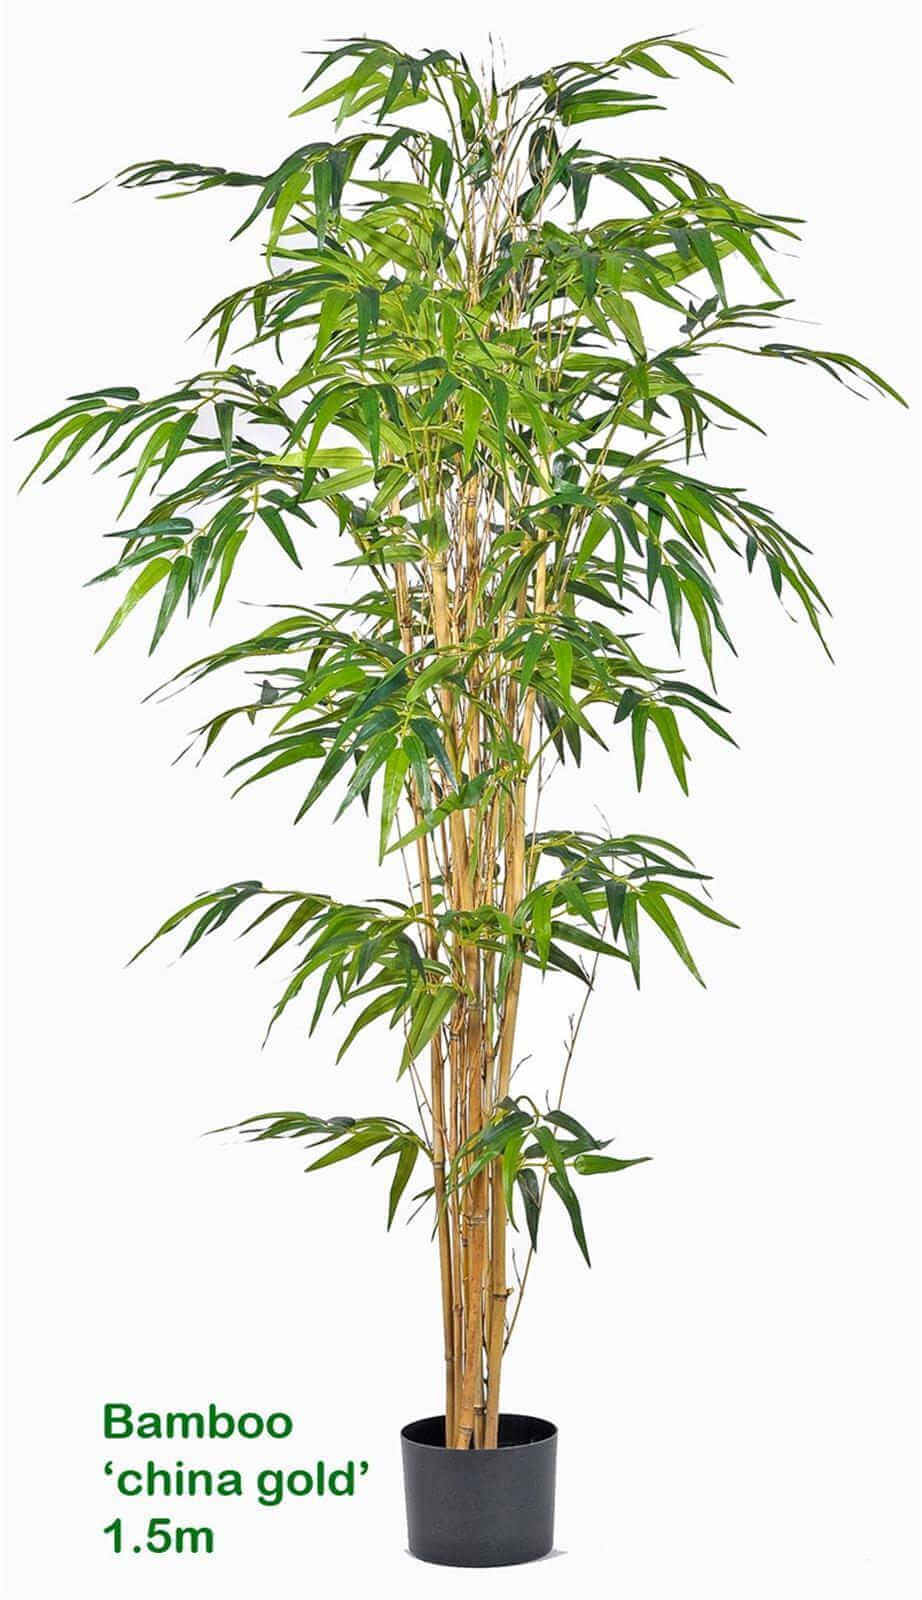 Articial Plants - Bamboo 'china gold' 2.1M